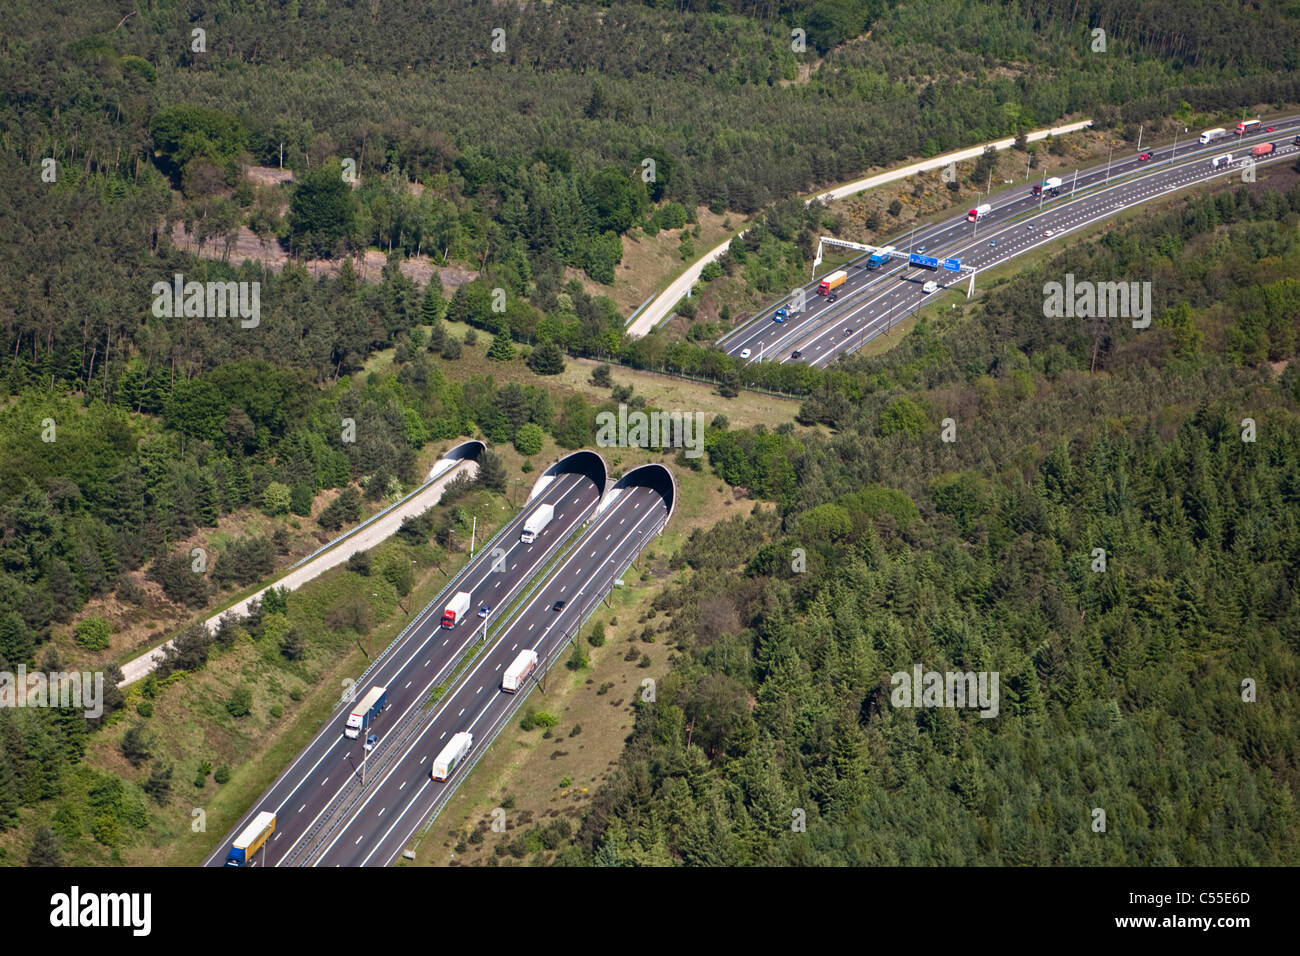 The Netherlands, Hoenderloo, Motorway or highway and eco crossover for fauna. Ecoduct. Aerial. - Stock Image